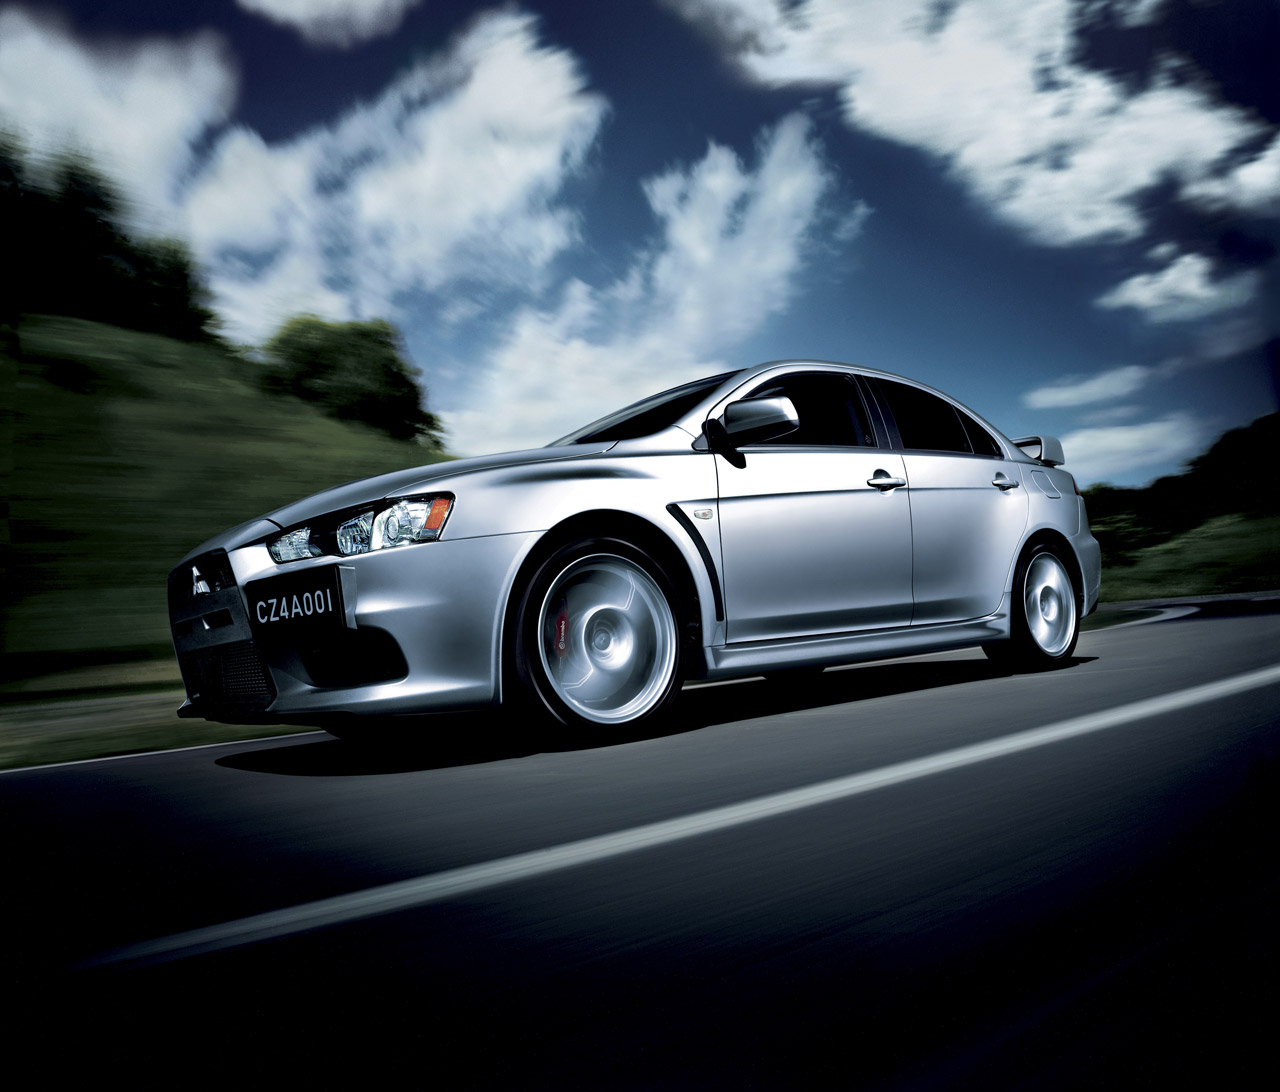 Mitsubishi Car Wallpaper: 2011 Mitsubishi Lancer Evolution Wallpaper CAR DESIGNS